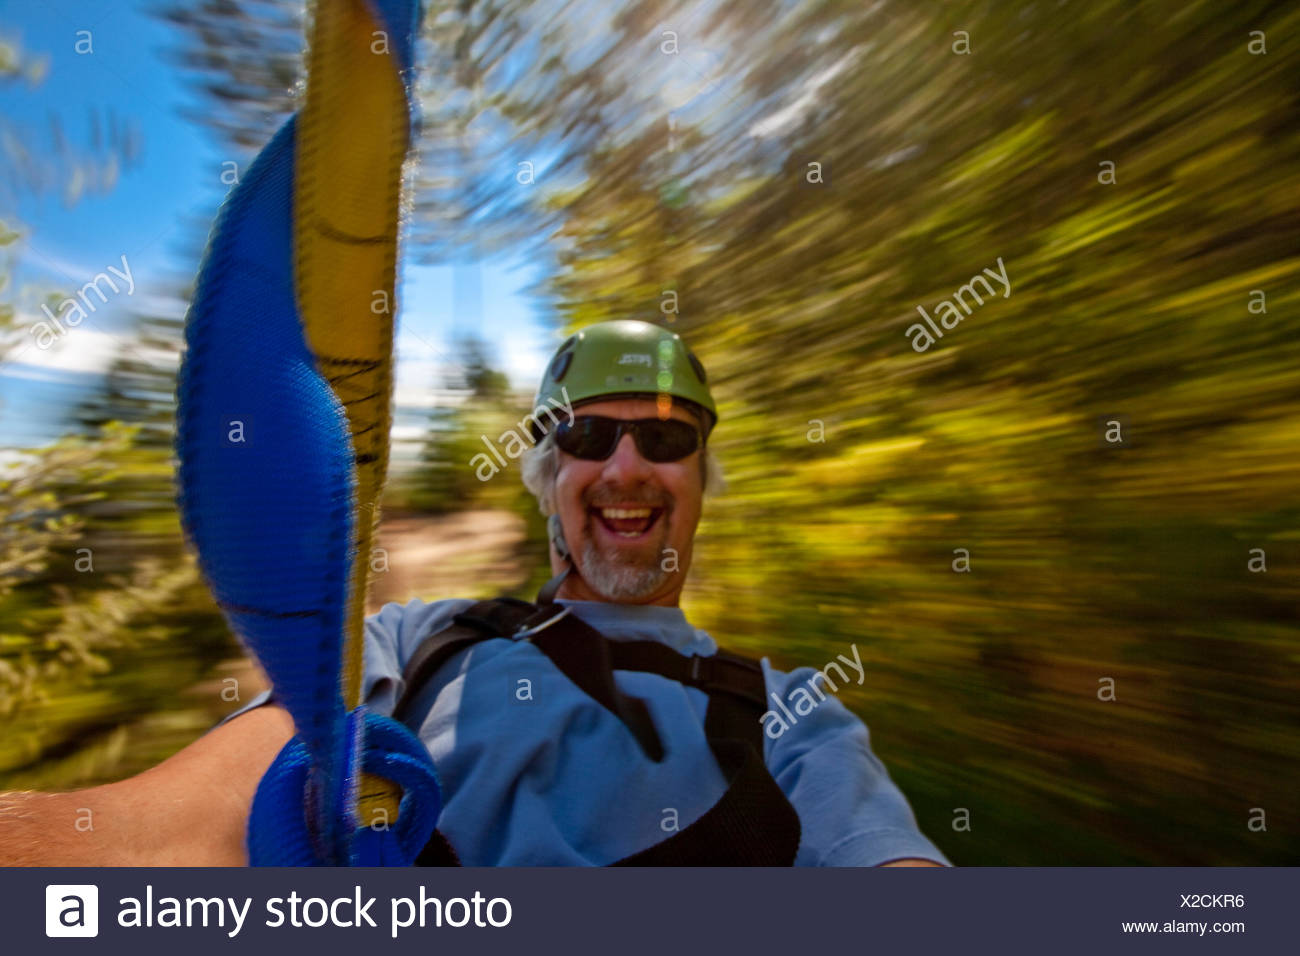 Man enjoys zip-line at Oyama Zipline, Okanagan Valley, BC, Canada. - Stock Image